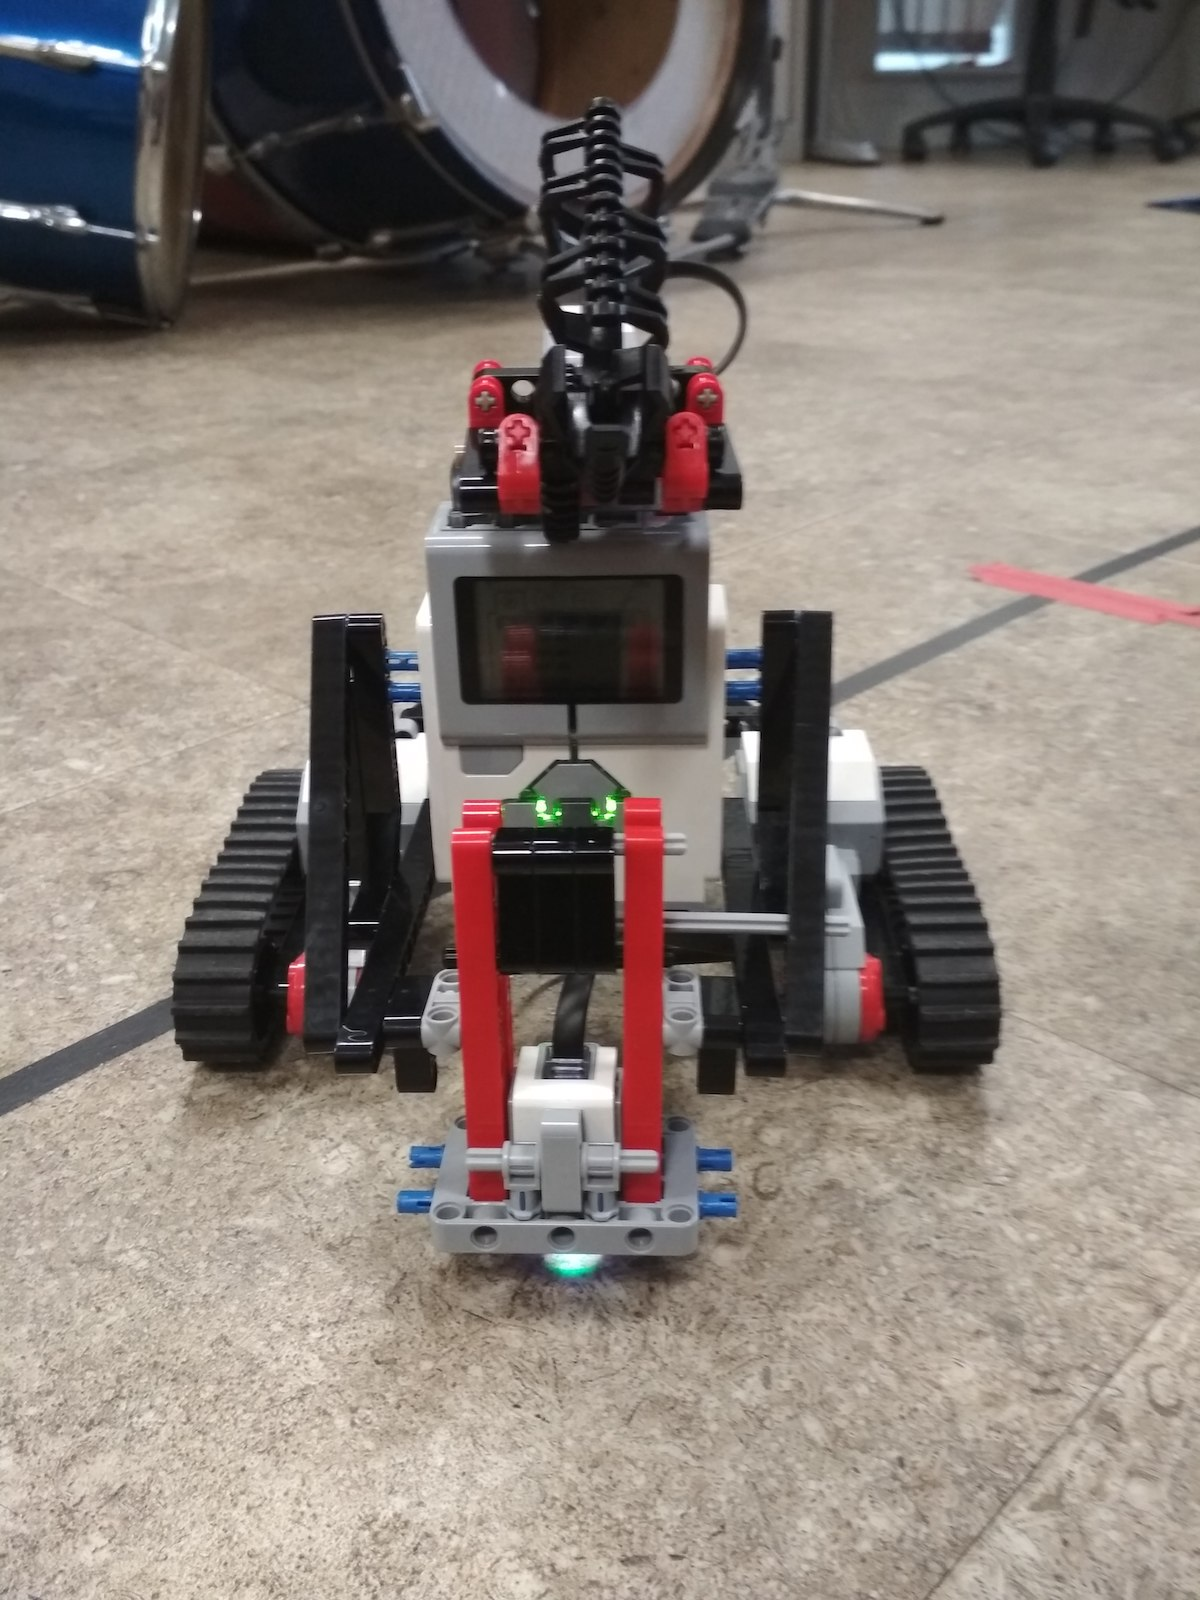 Lego mindstorms robot on the floor